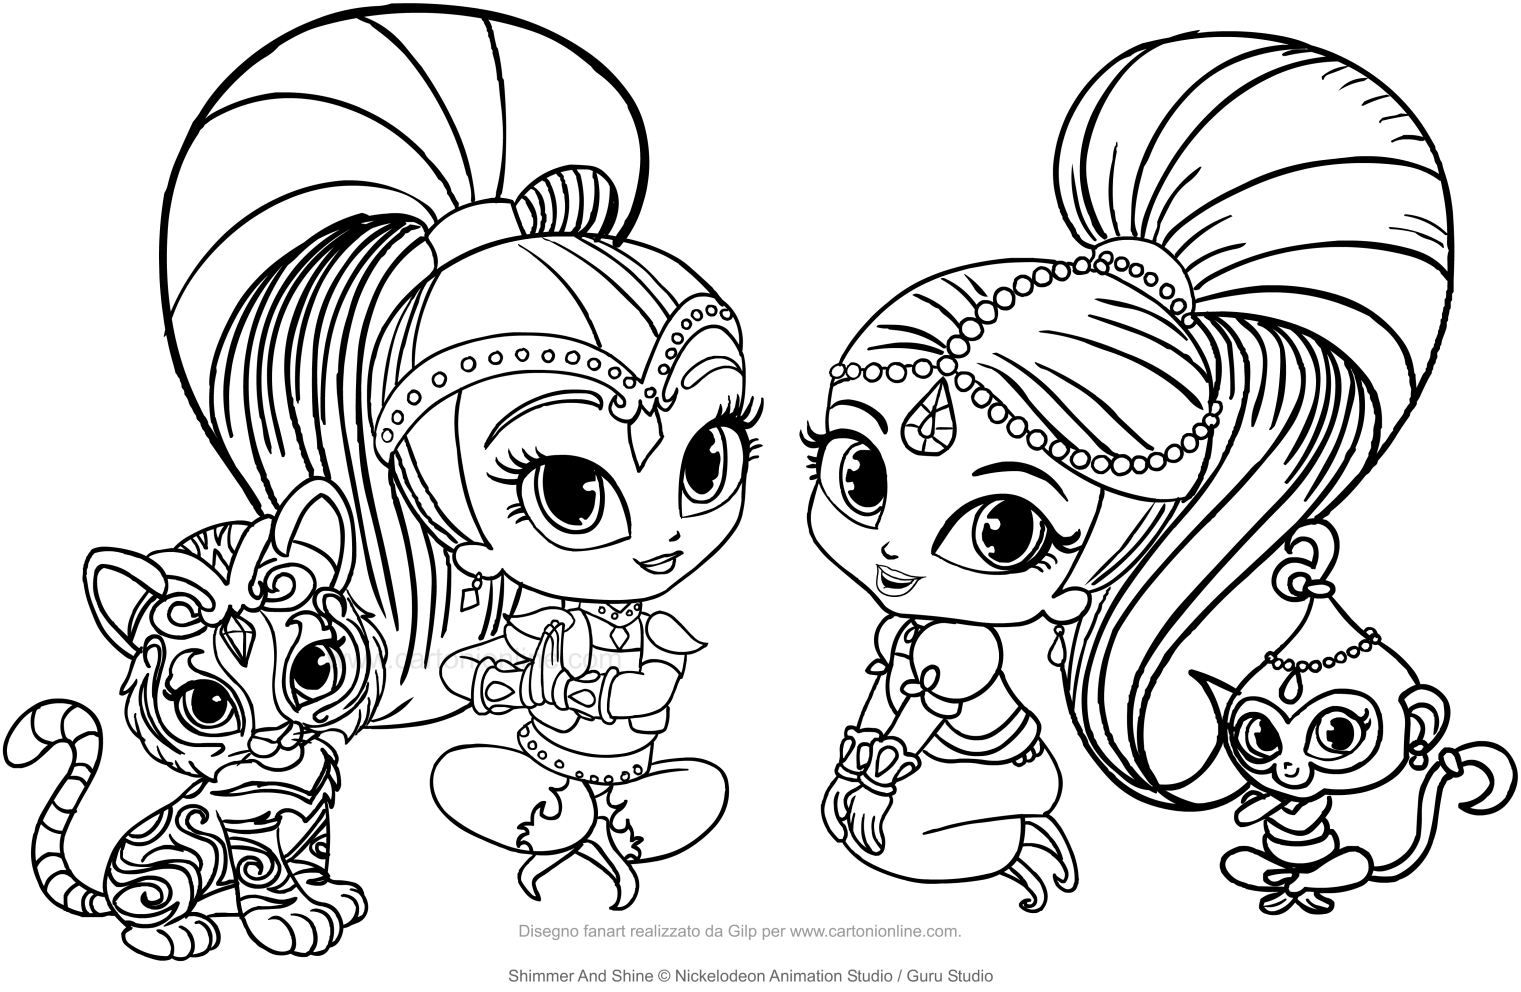 Disegni Di Shimmer And Shine Da Colorare